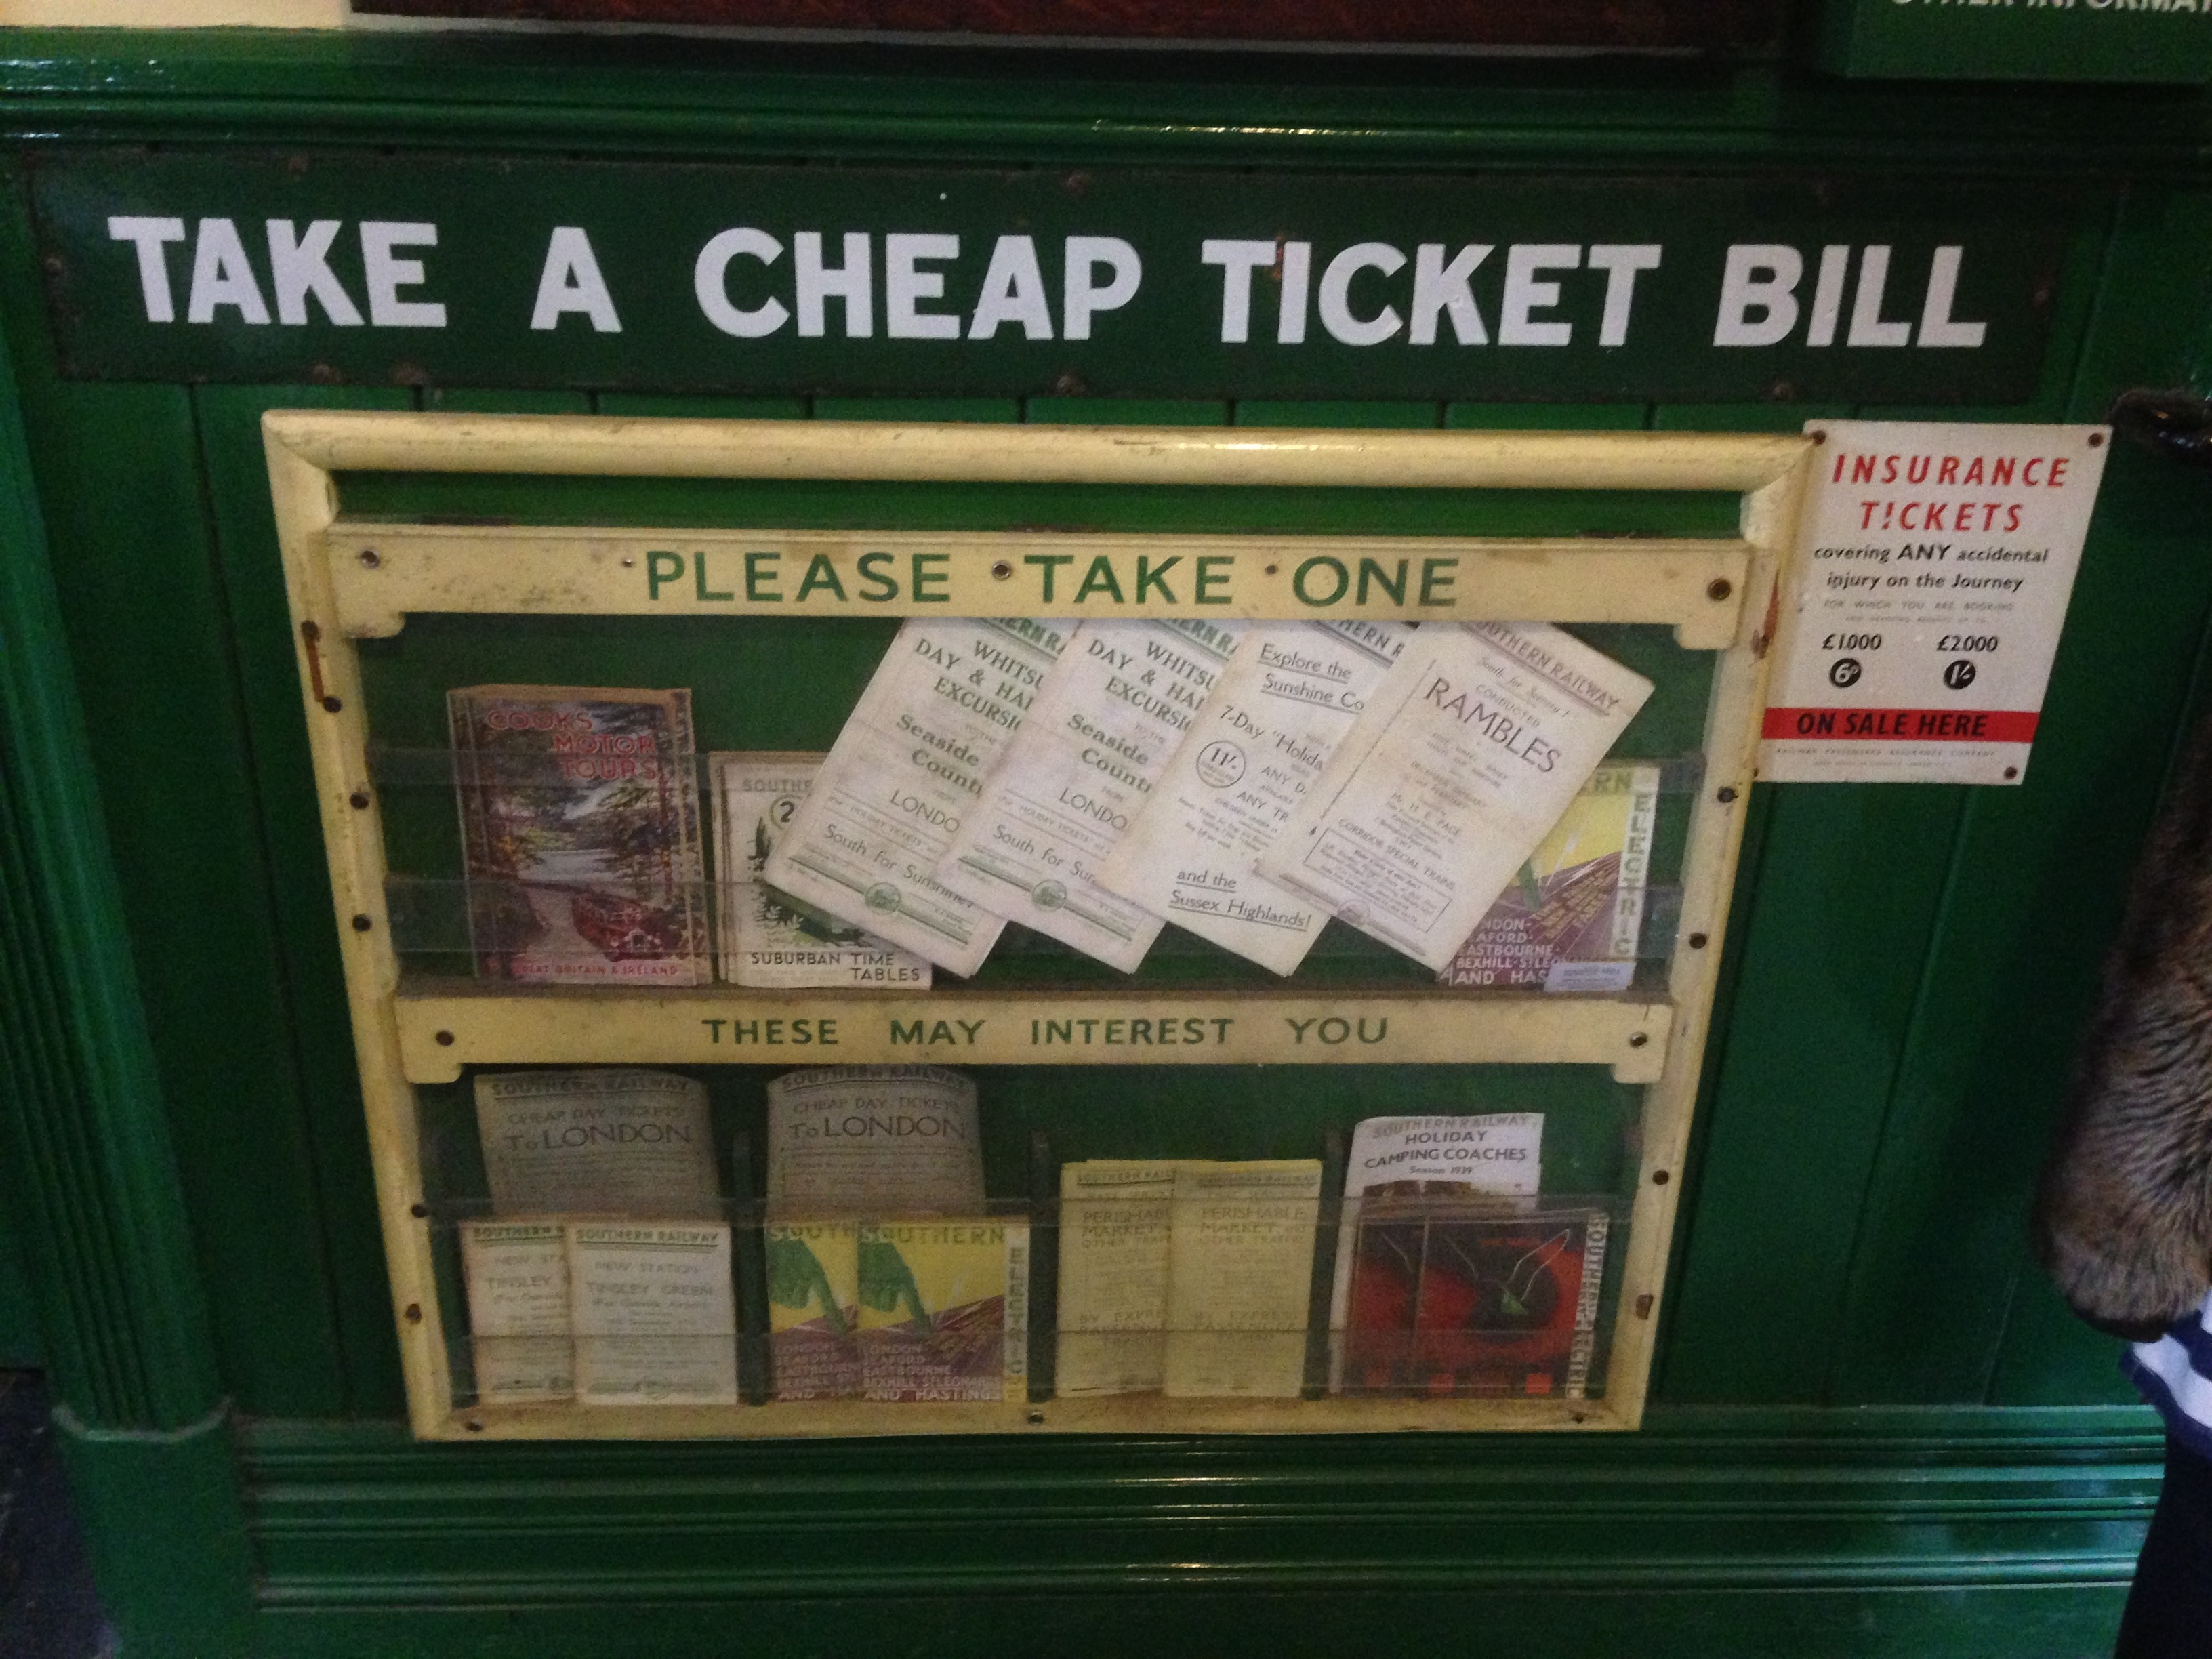 Our Trip to the Bluebell Railway